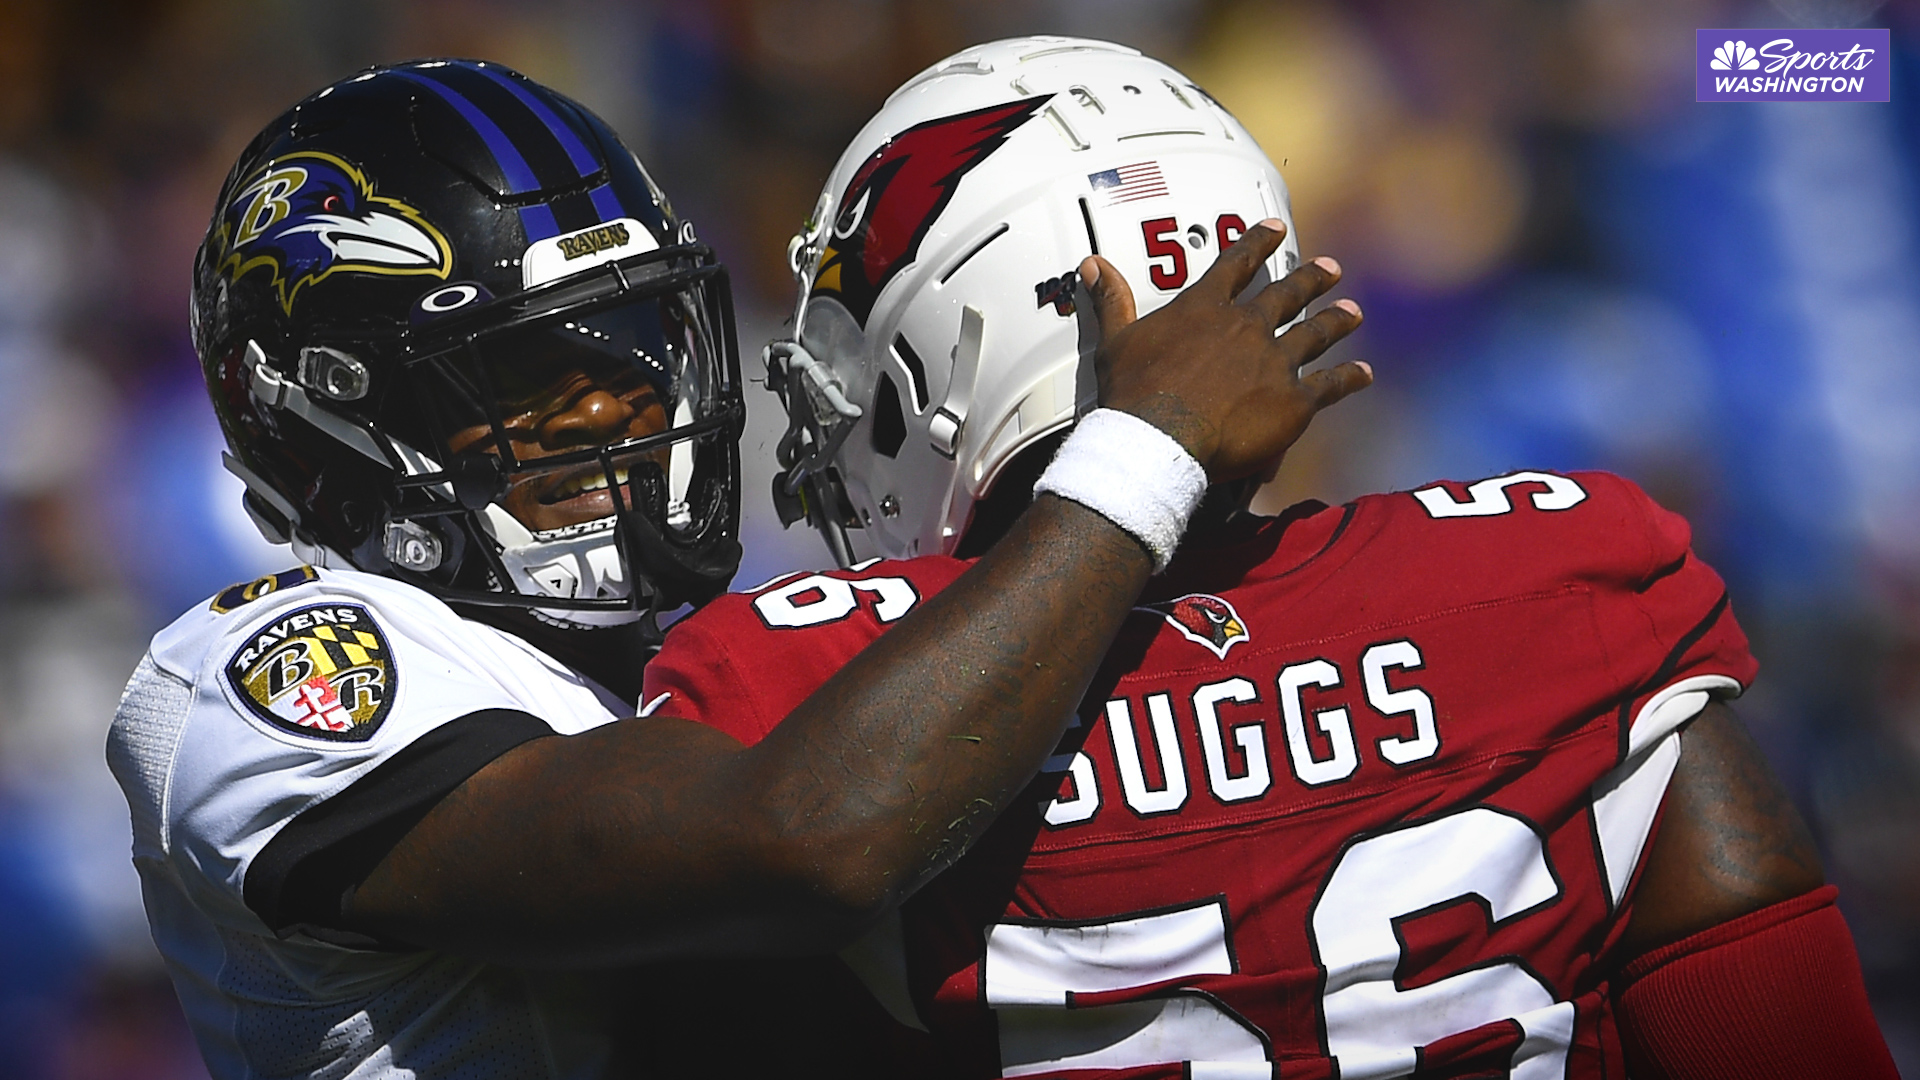 Harbaugh 'just loves' what Lamar Jackson brings to the game